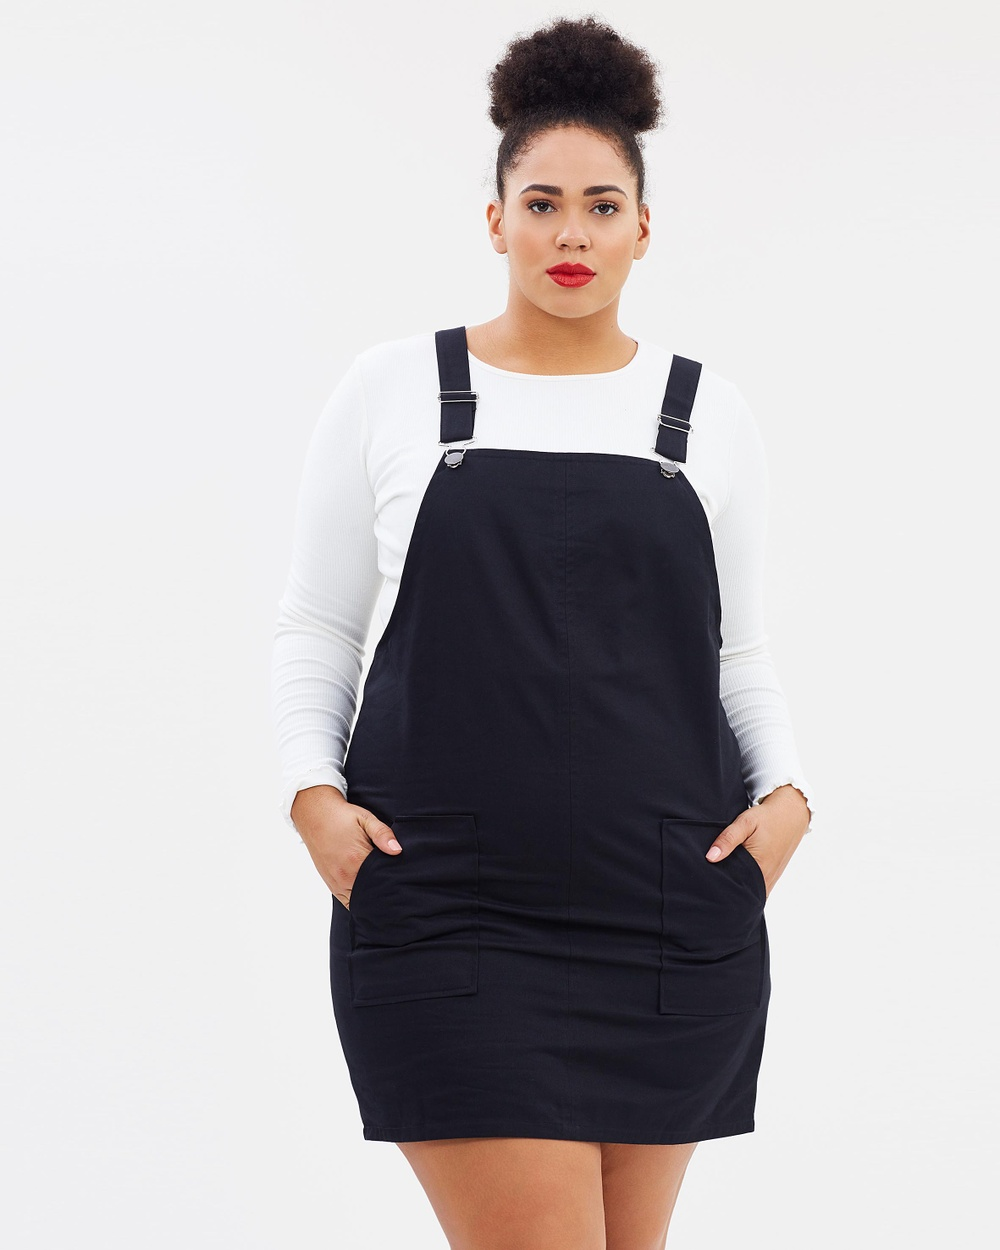 Atmos & Here Curvy ICONIC EXCLUSIVE Atomic Pinafore Dress Dresses Black ICONIC EXCLUSIVE Atomic Pinafore Dress